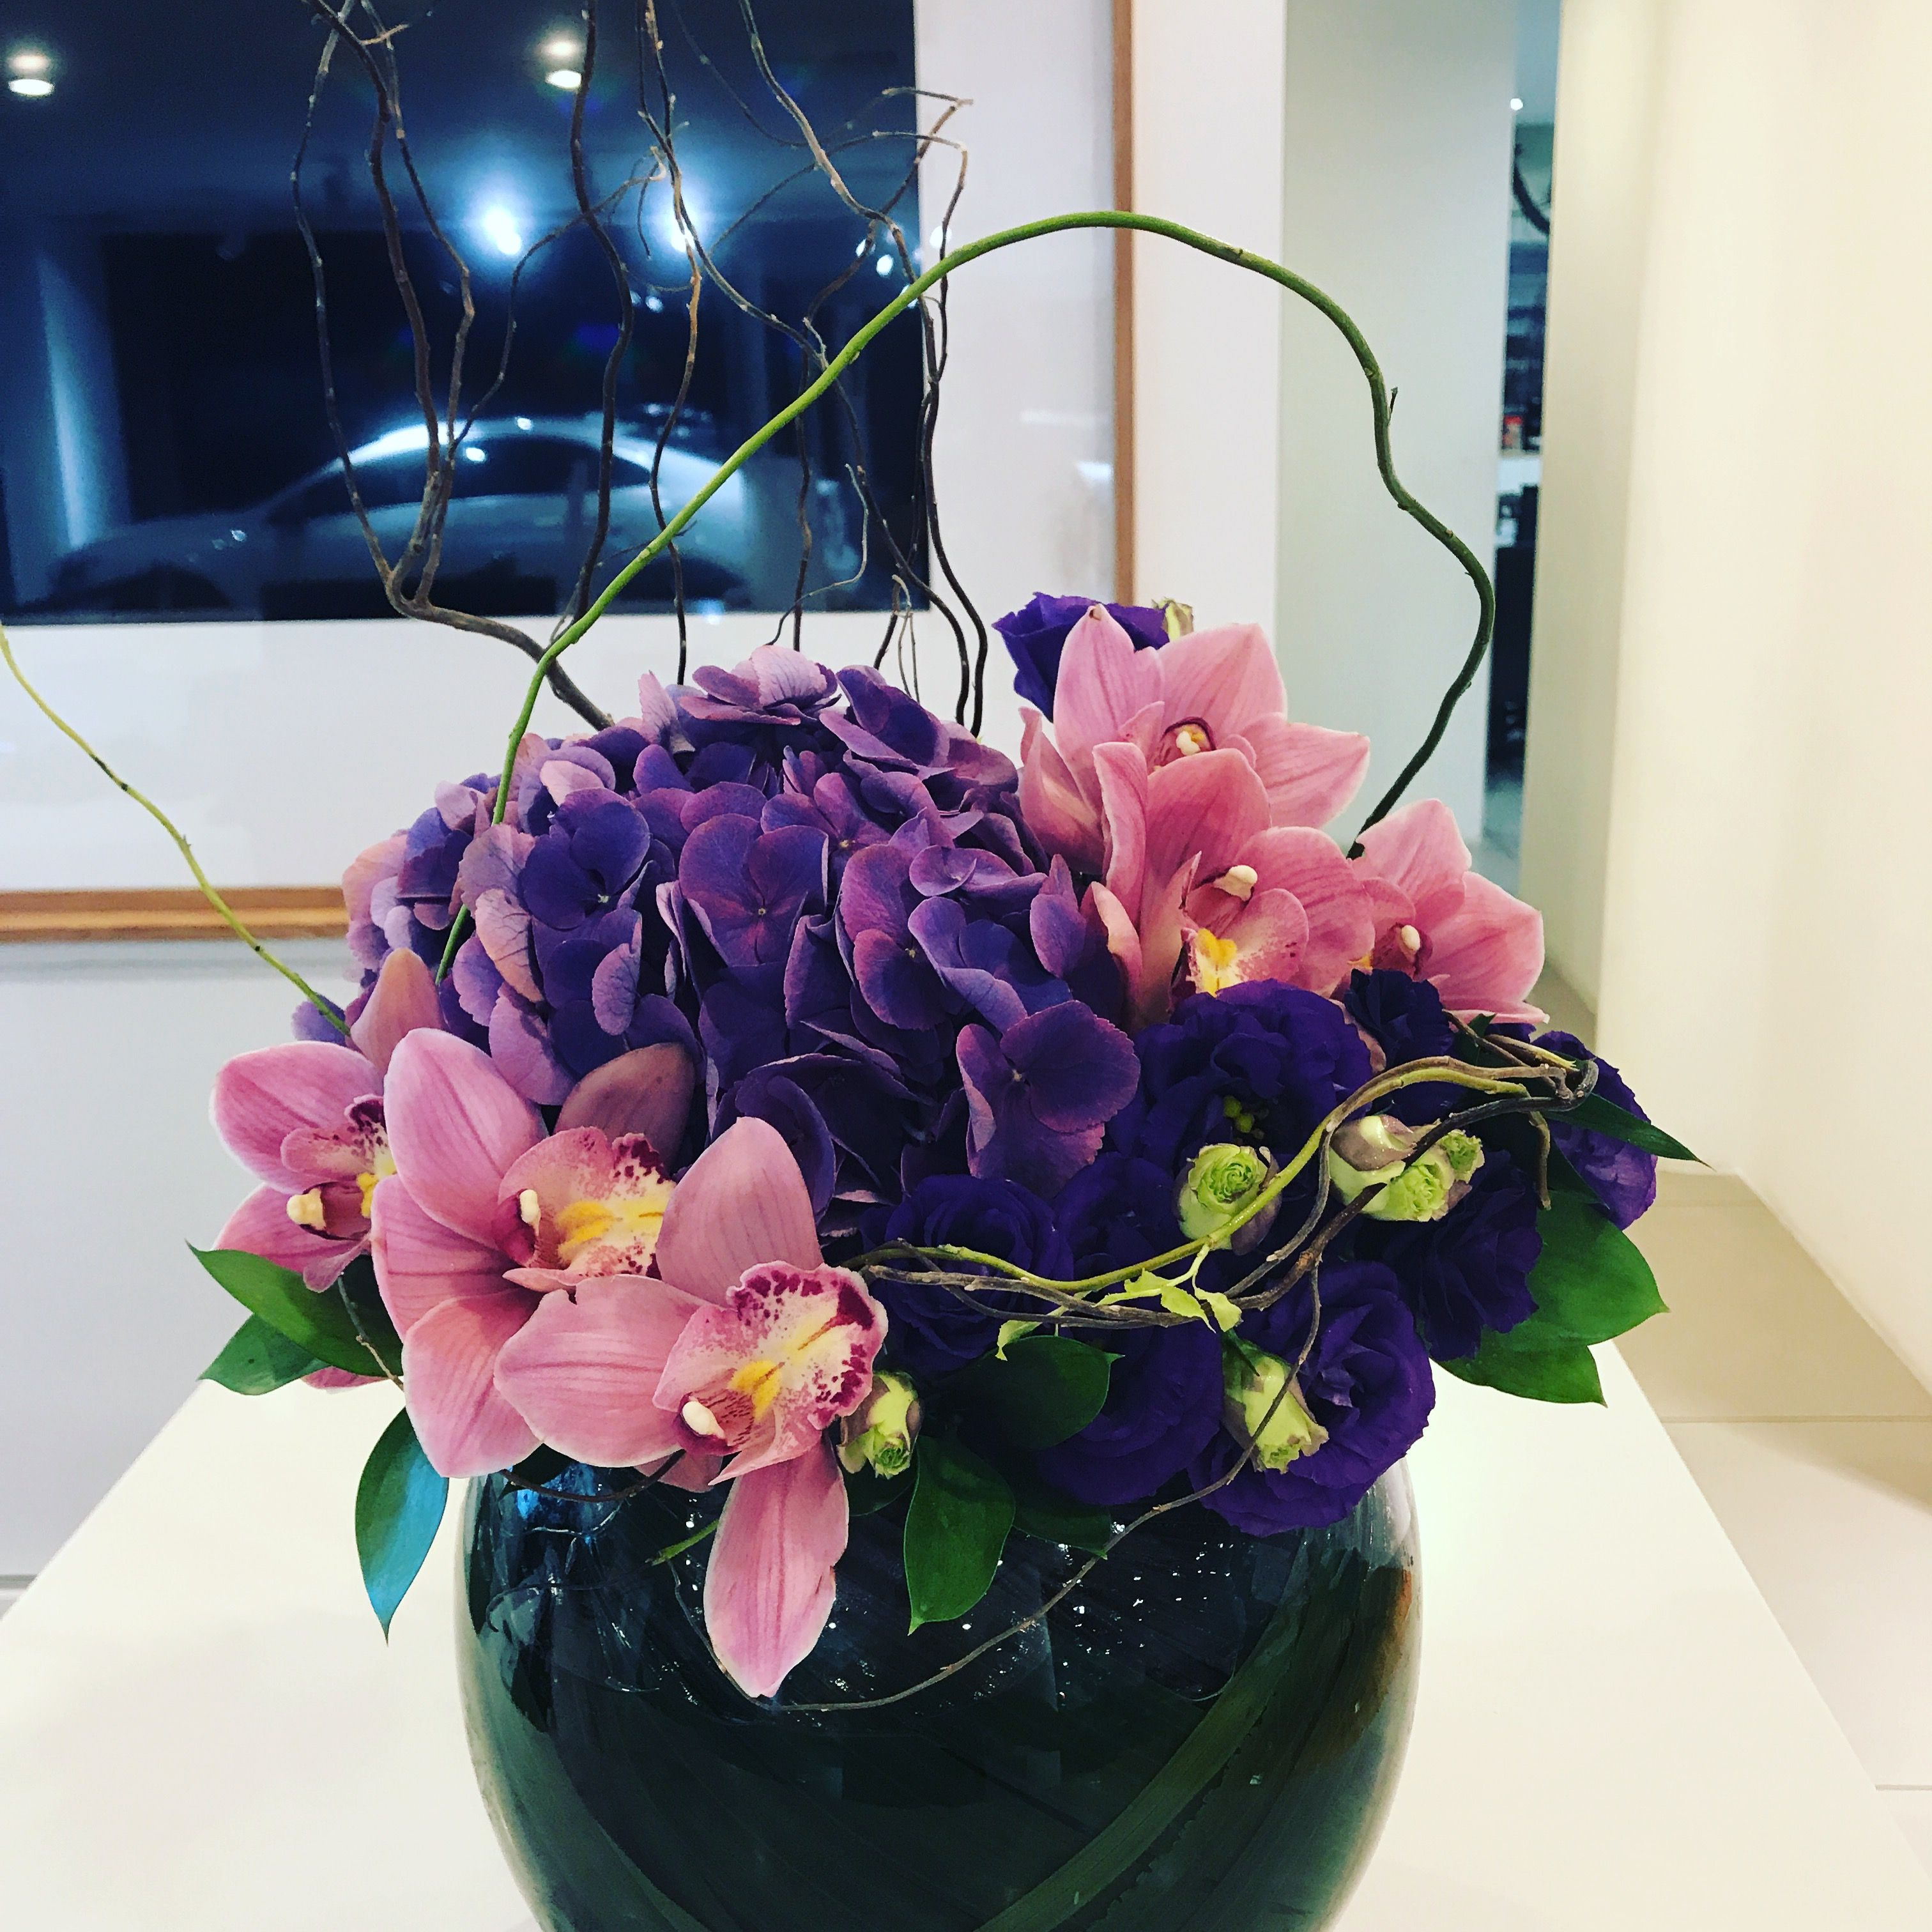 Happy Weekend! Florist Singapore 🇸🇬 Creations flower